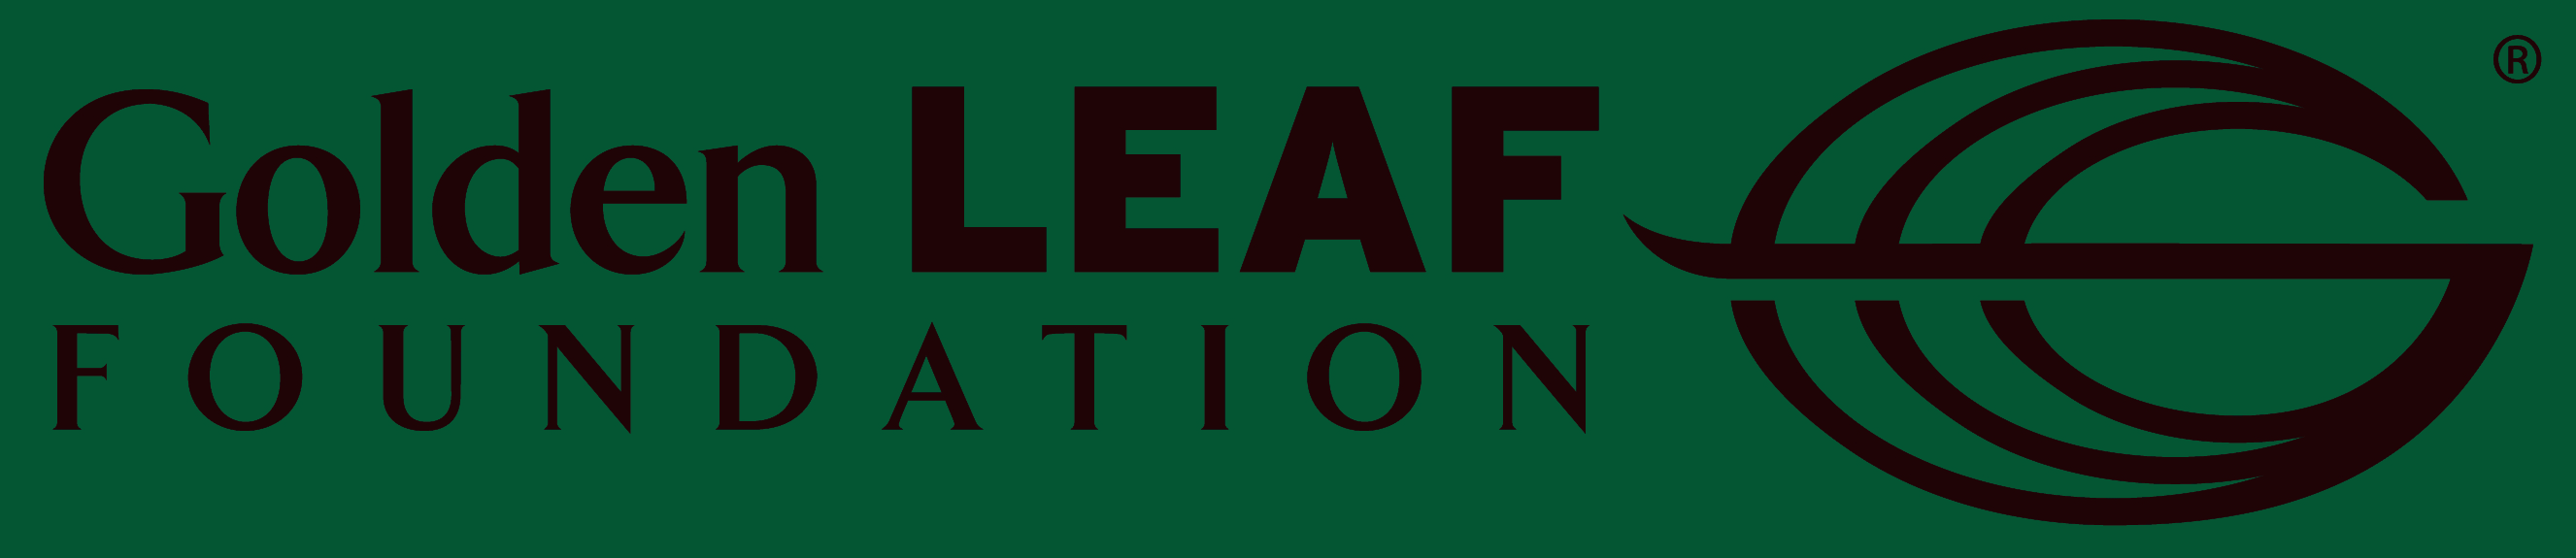 golden leaf logo green